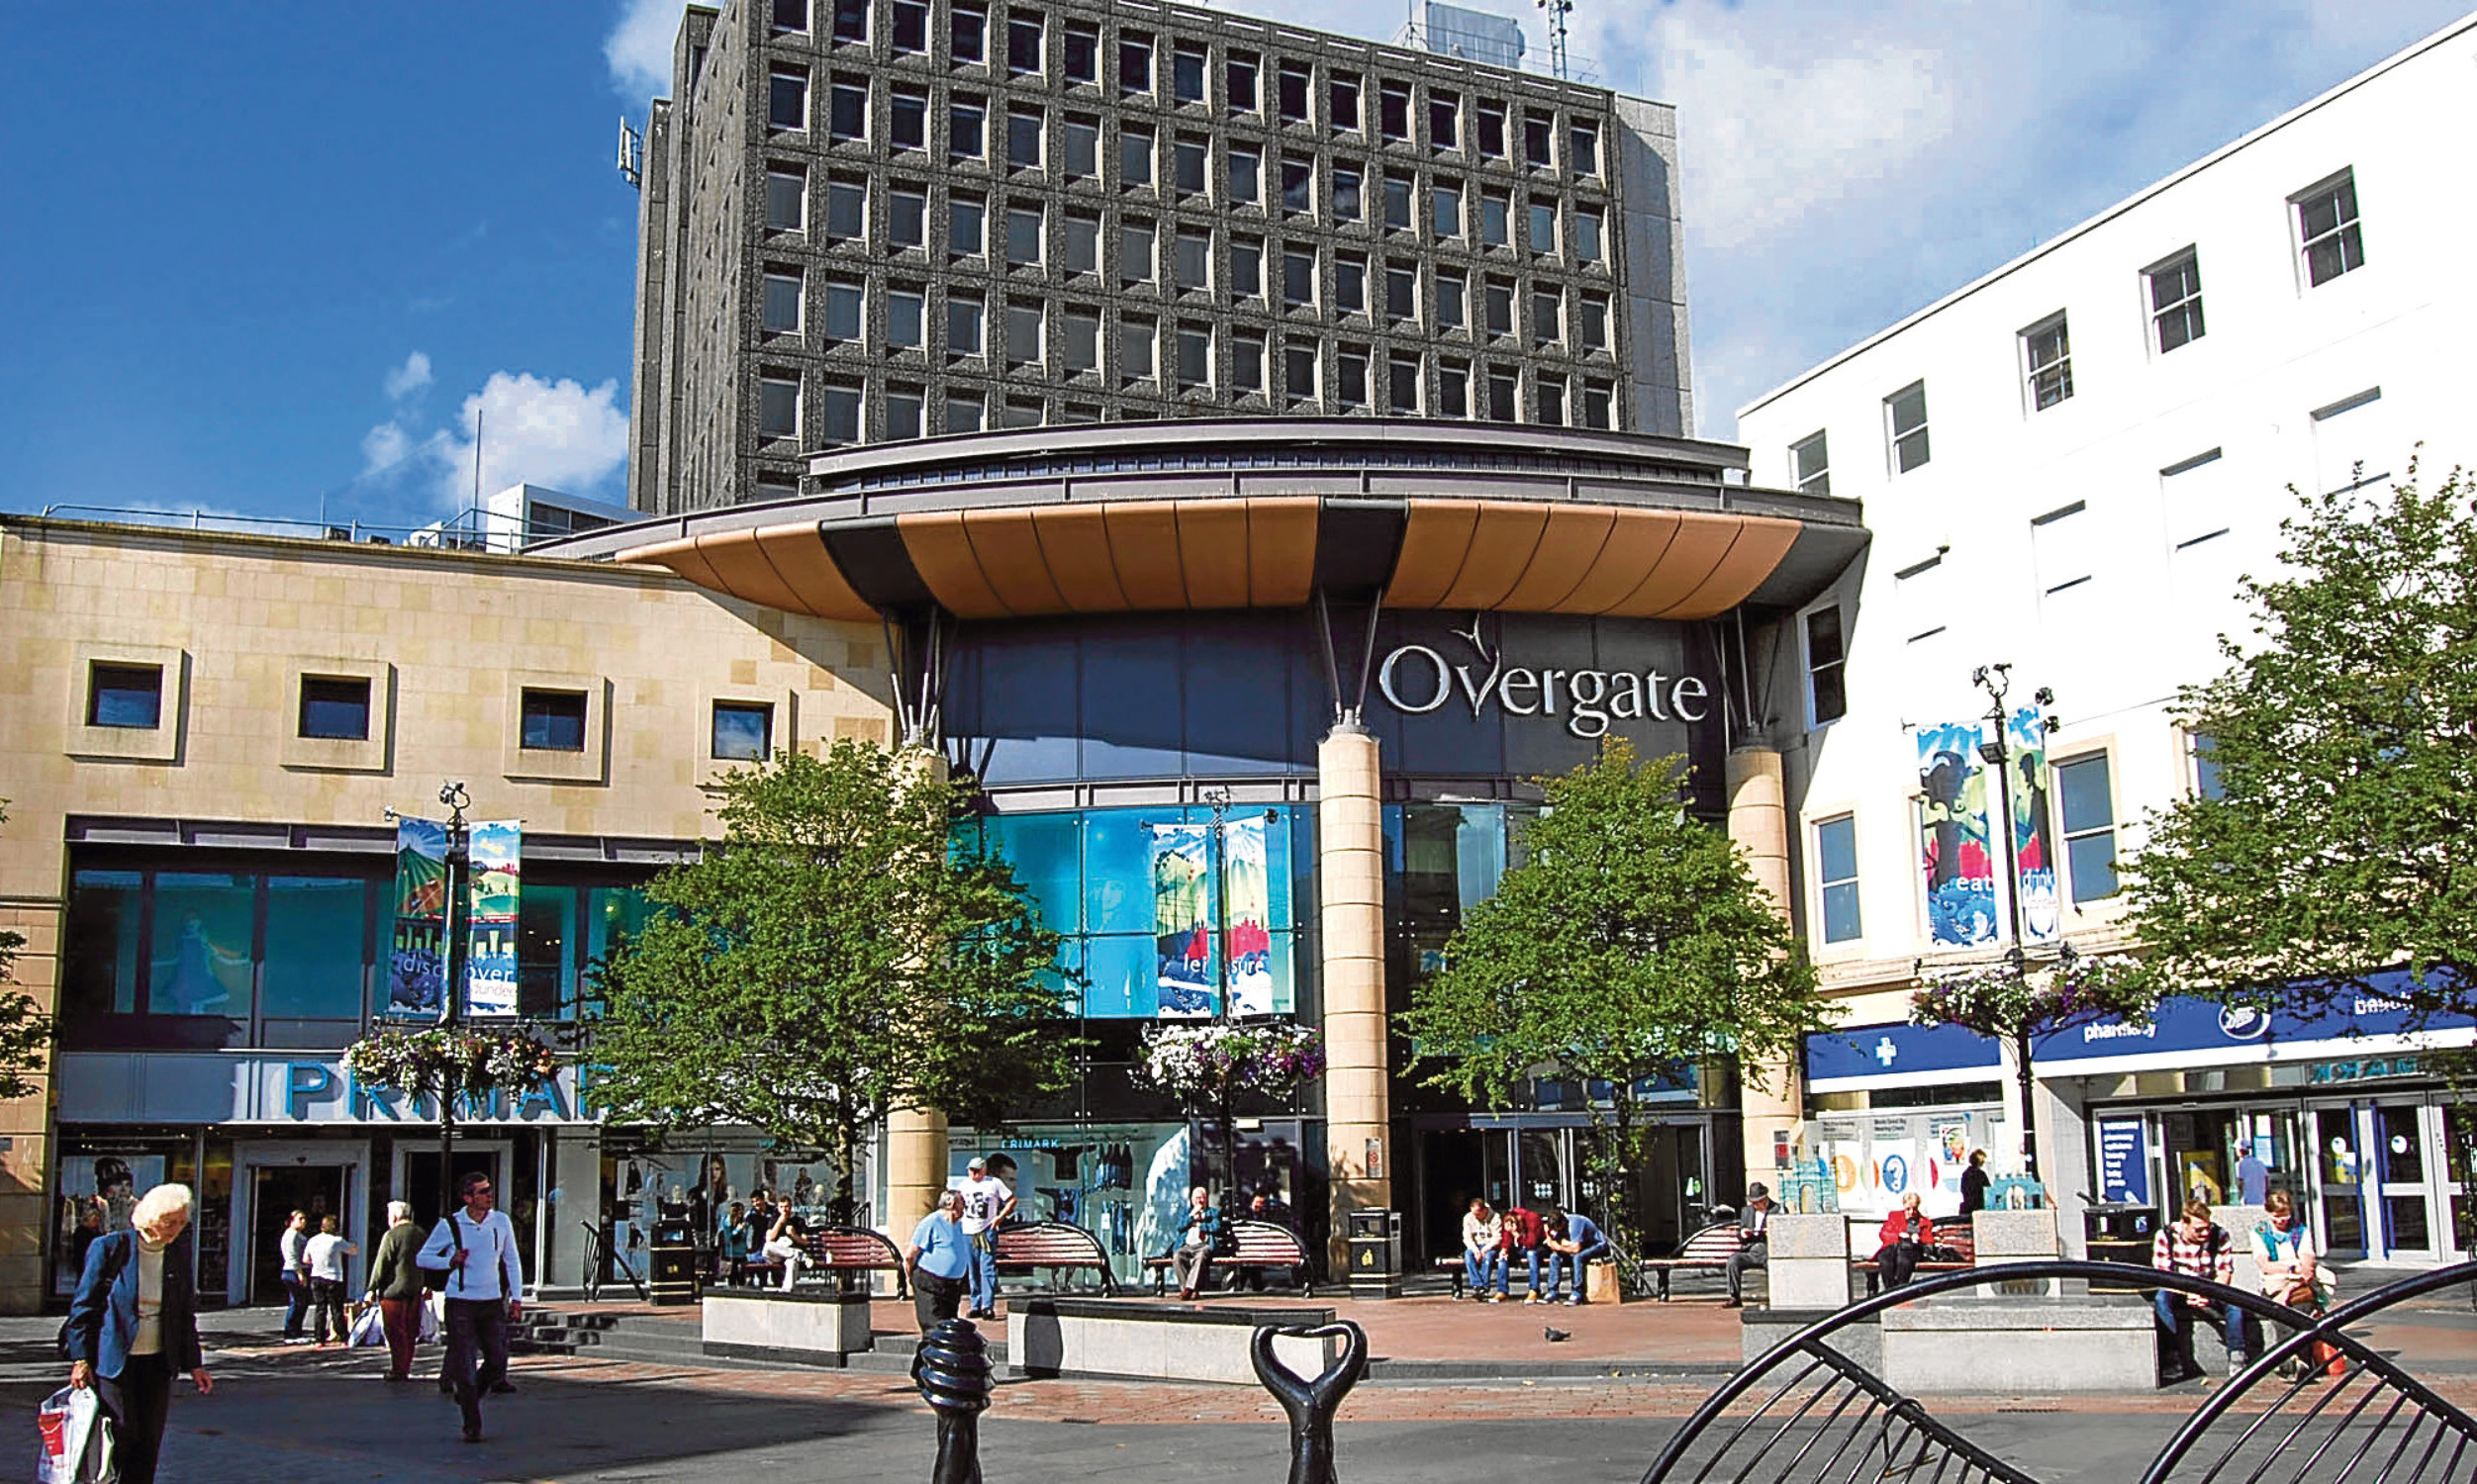 Debenhams is based in the Overgate Shopping Centre in Dundee